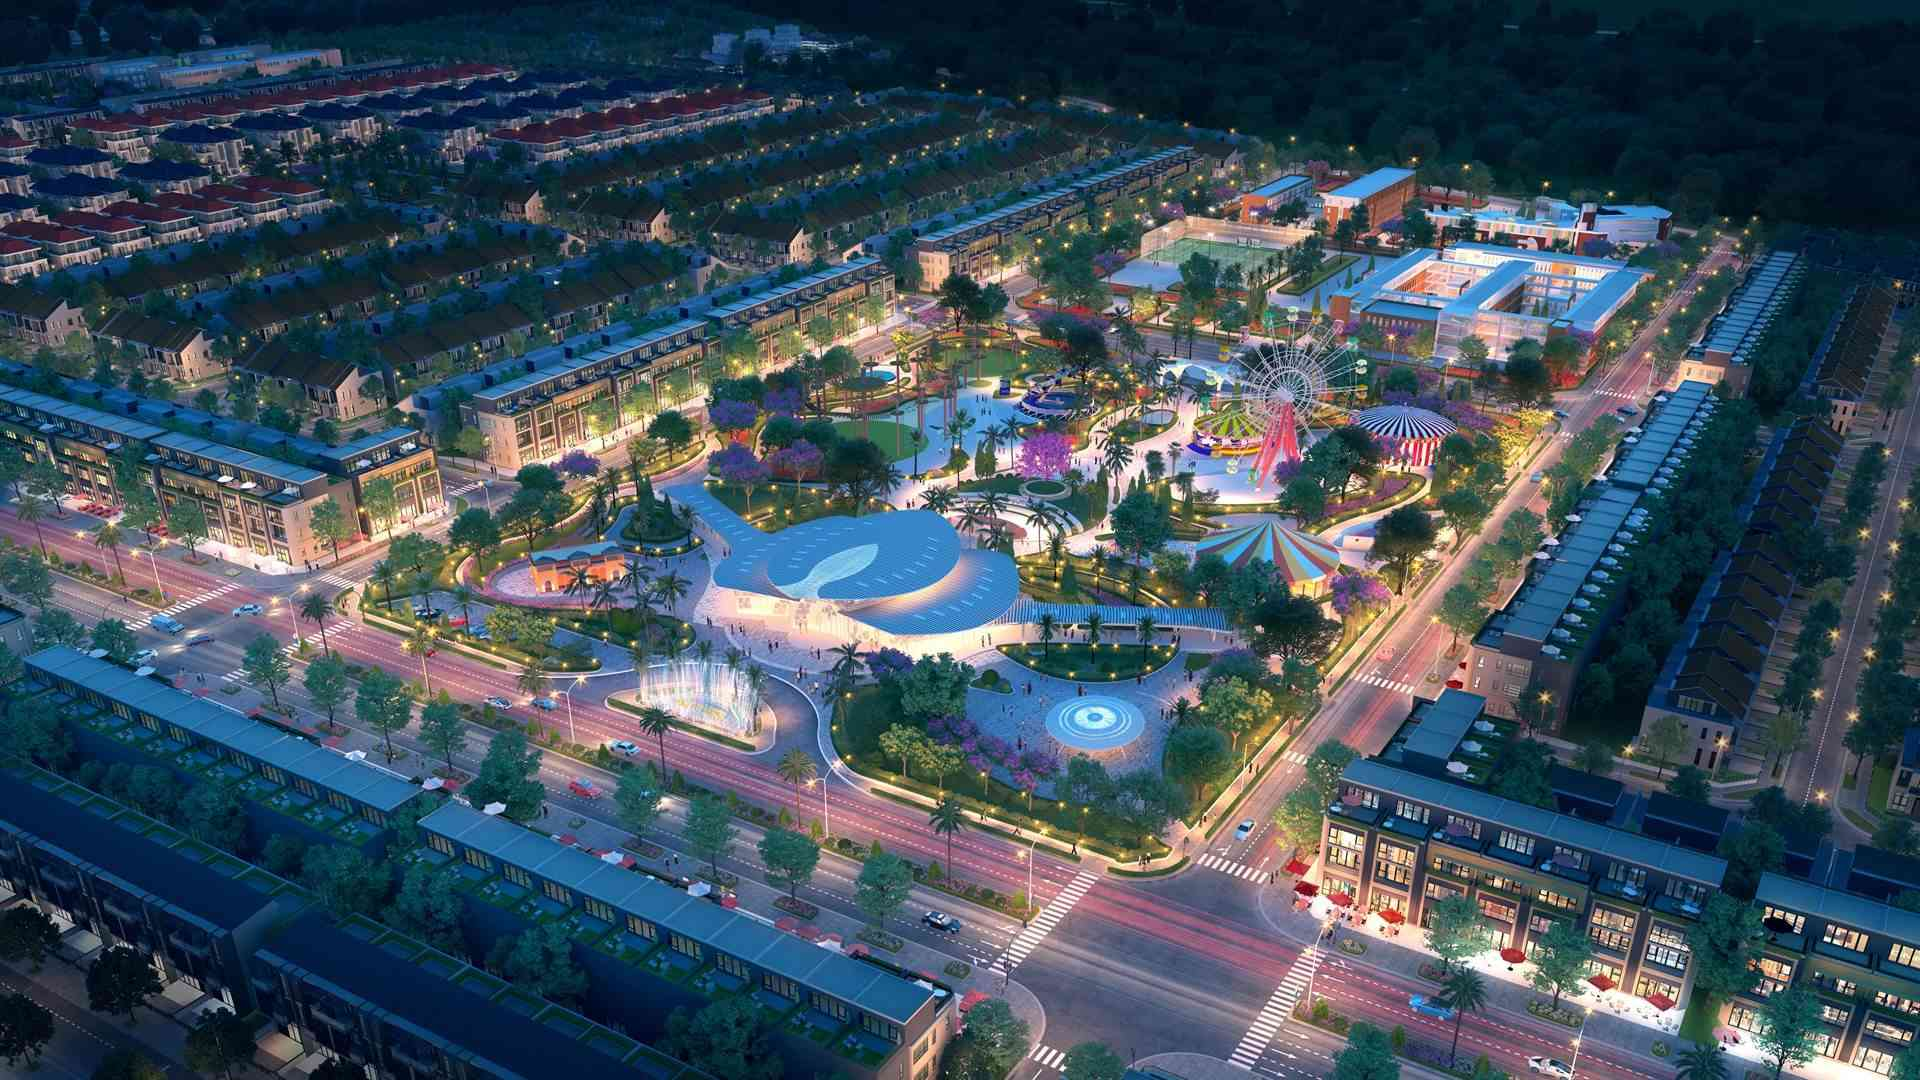 cong-vien-sky-park-ve-dem-toi-gem-sky-world-long-thanh-shophousevn